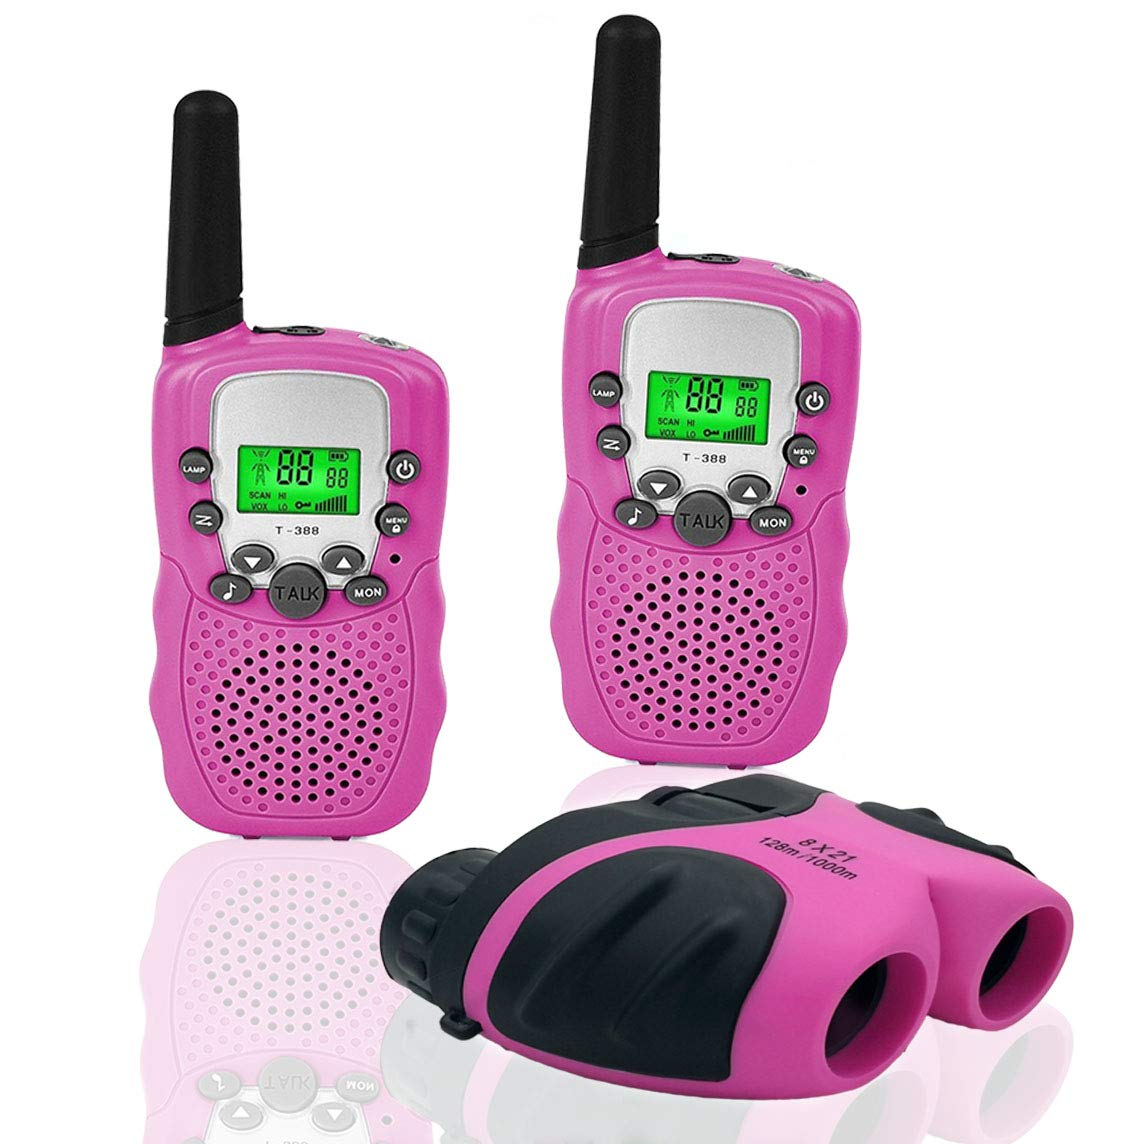 BIBOYELF Outdoor Toys for 3-12 Year Old Boys, Walkie Talkies for Kids Toys for 3-12 Year Old Girls,Kids Binoulars for 4-9 Year Old Girl Birthday Gift ,1 Set(Pink) by BIBOYELF (Image #1)